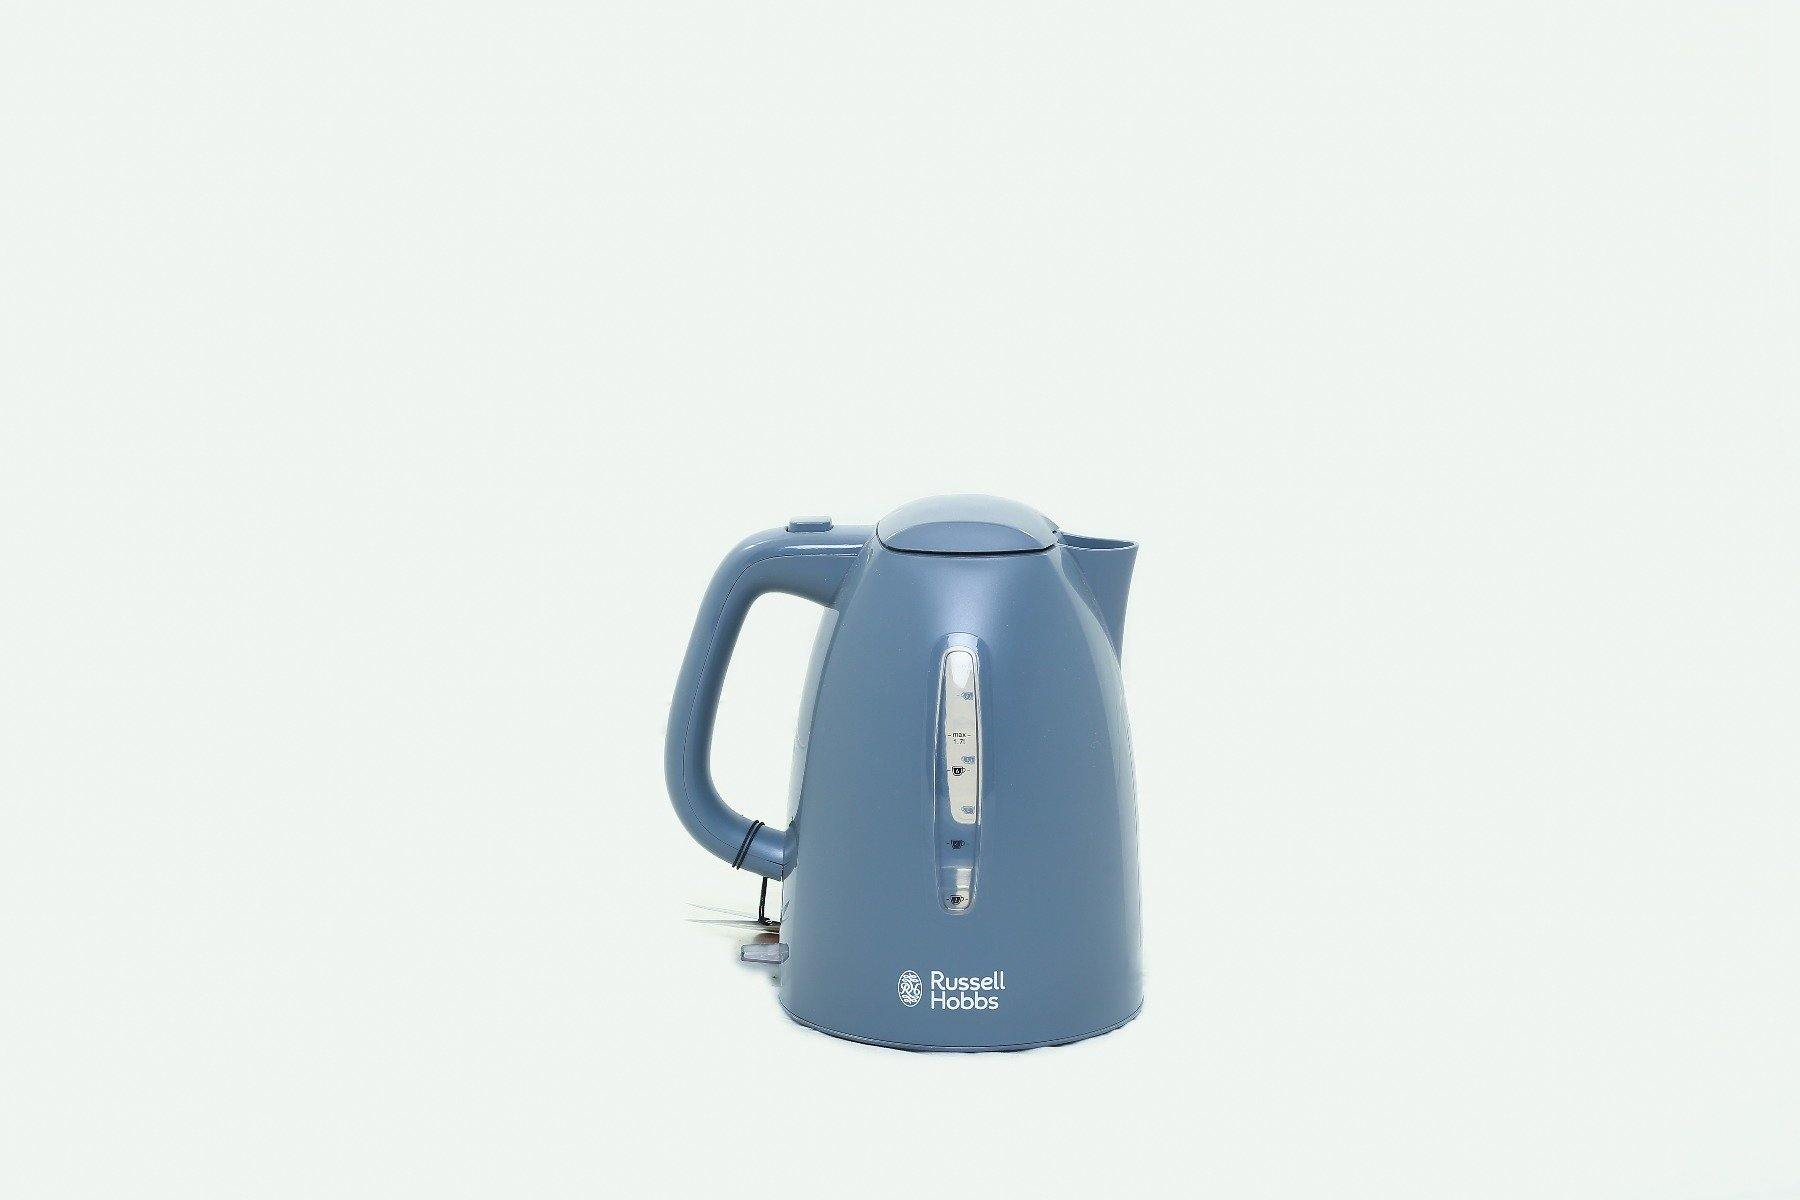 Russell Hoobs Textures Grey Kettle